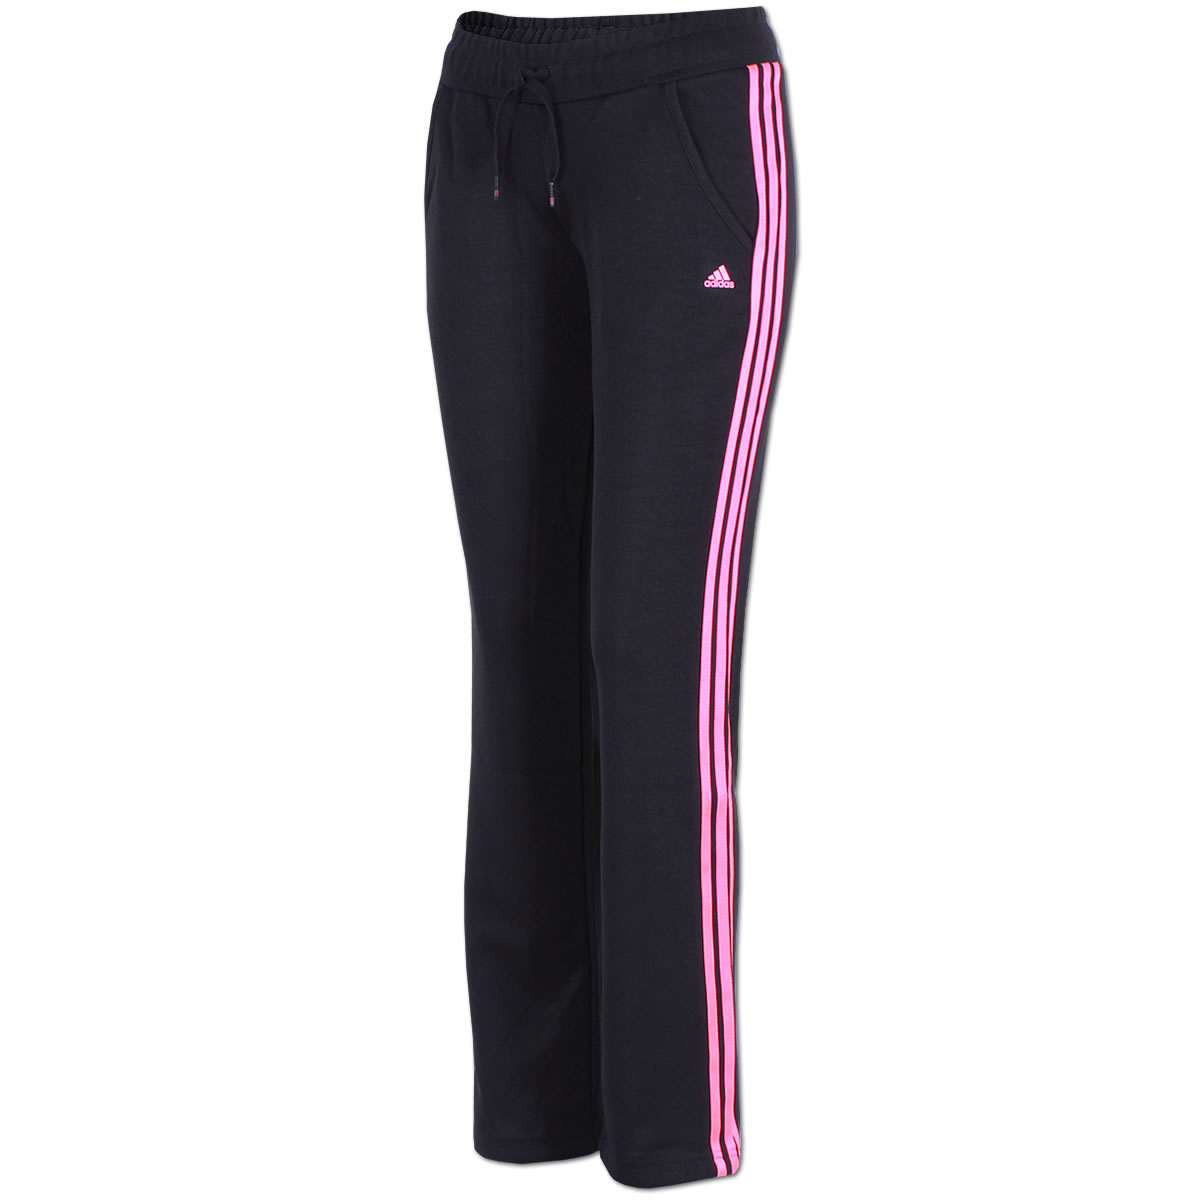 Outlet-Boutique Super Rabatt exzellente Qualität adidas Damen 3-Streifen Training Hose Workout Jogginghose ...